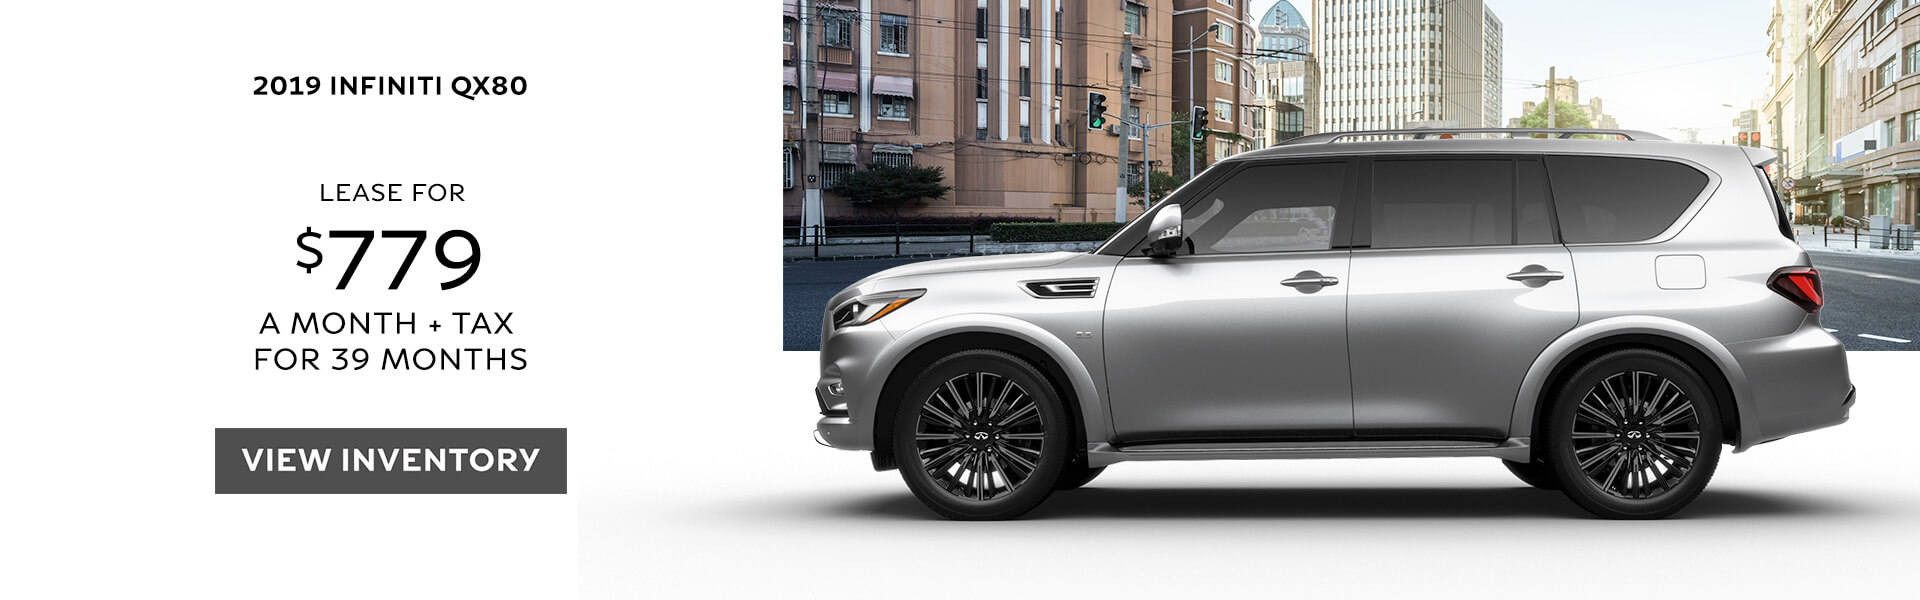 2019 QX80 - Lease for $779